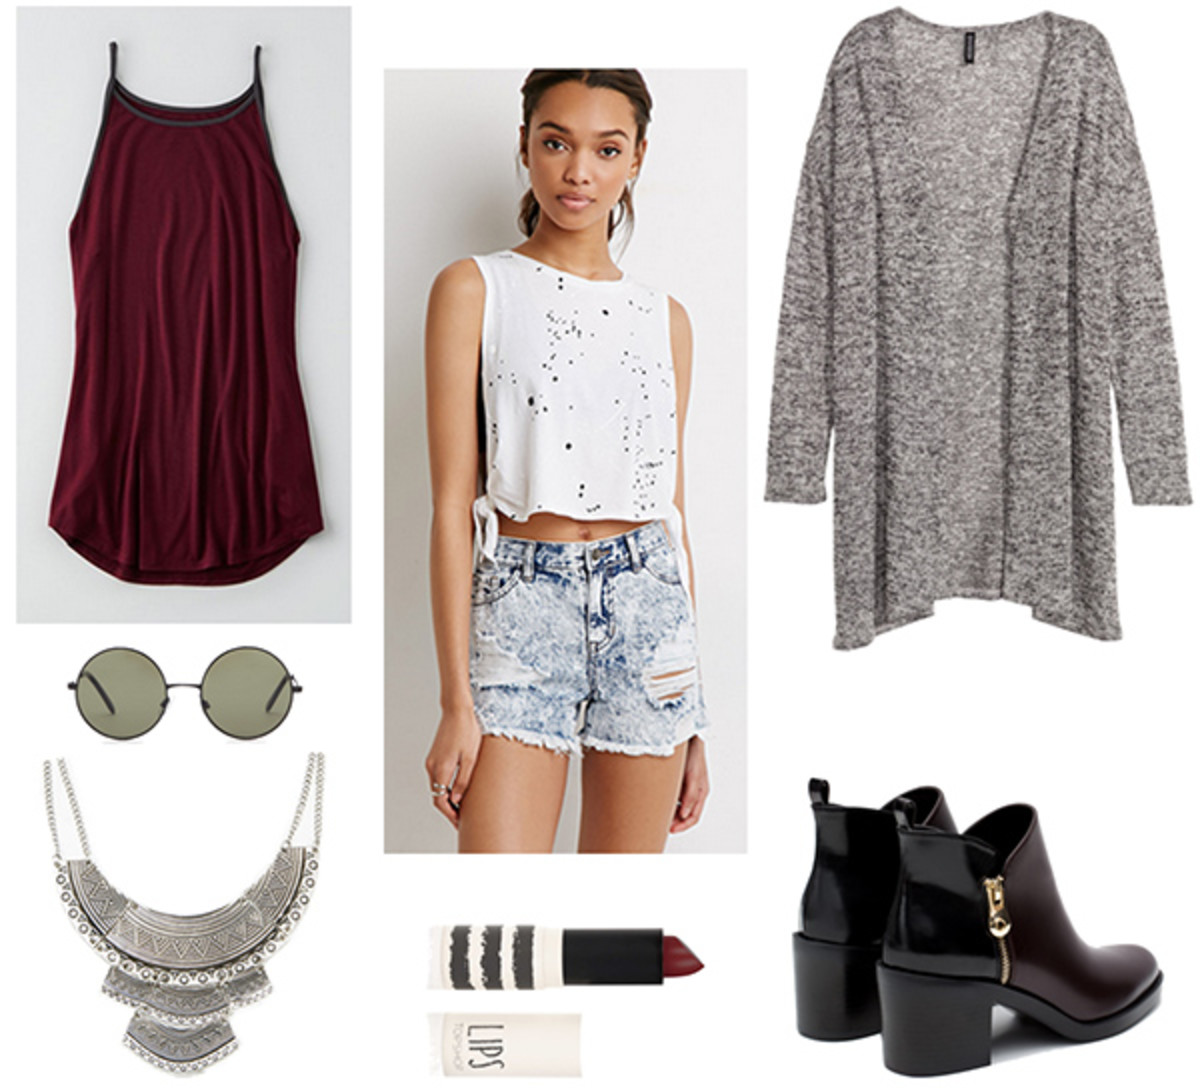 blue-light-shorts-r-burgundy-top-tank-grayl-cardiganl-bib-necklace-black-shoe-booties-sun-howtowear-fashion-style-outfit-fall-winter-weekend.jpg